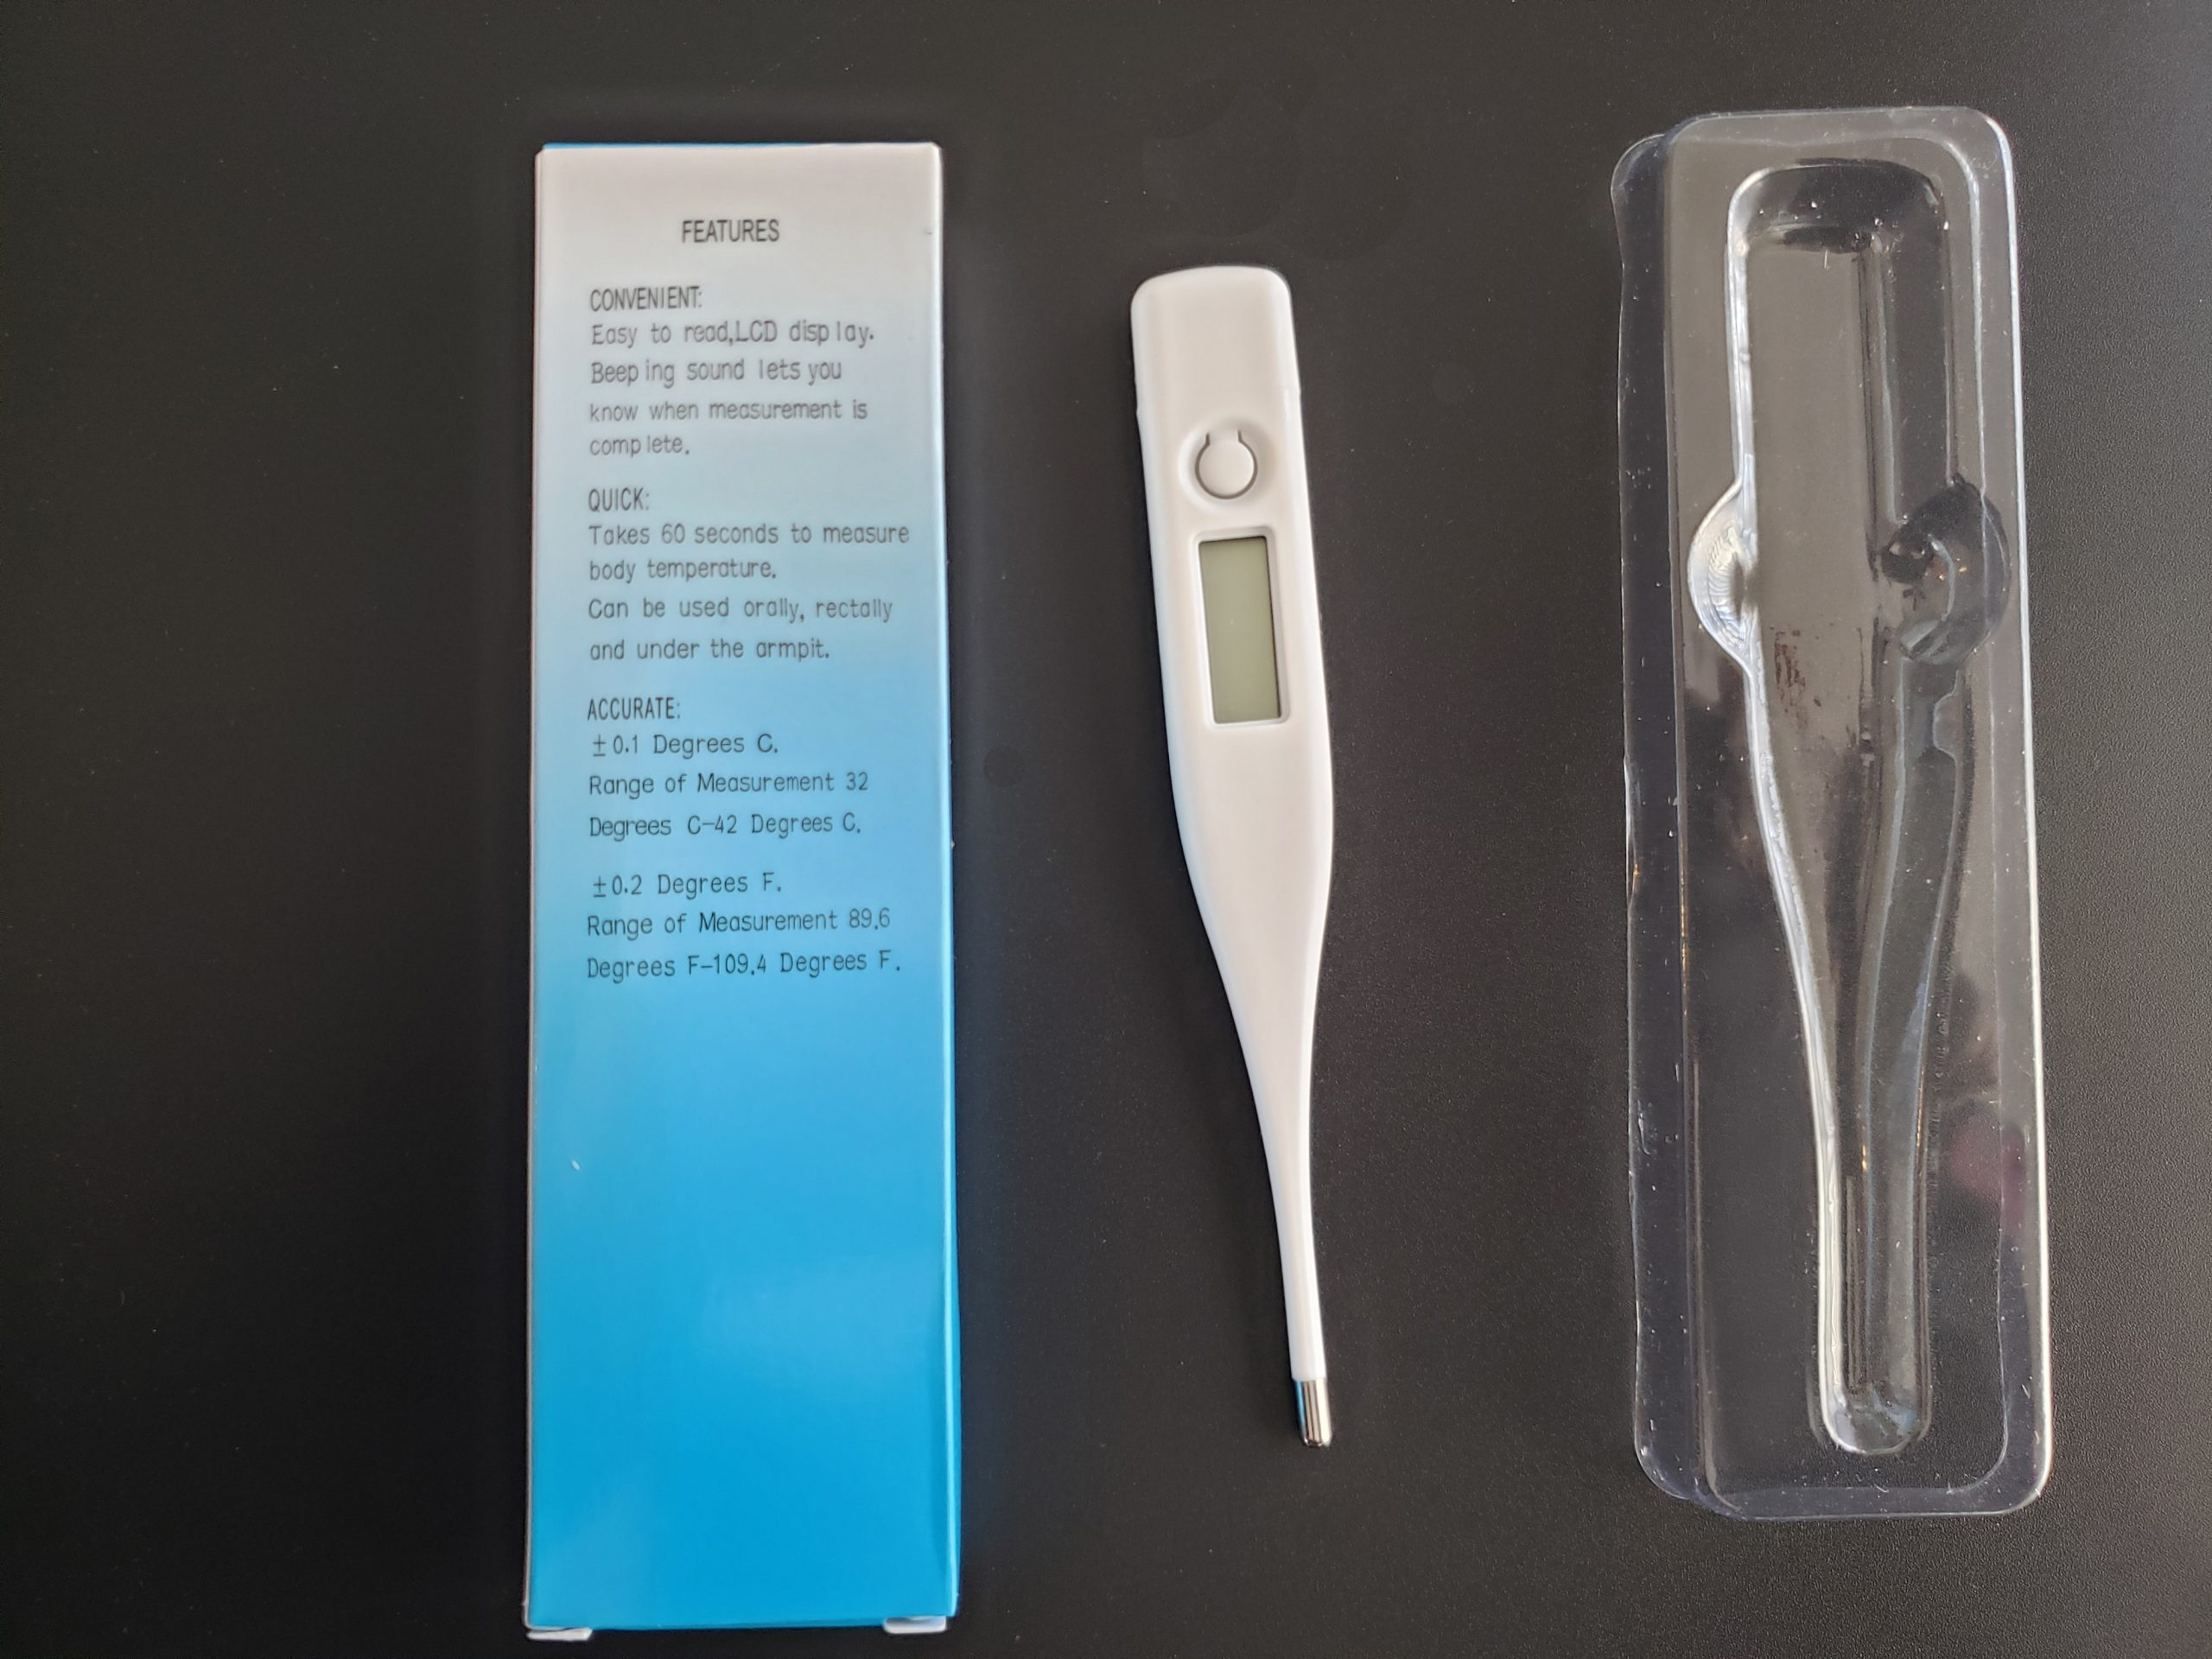 1 Digital Oral Thermometer For Baby Kids Adults Health Medical Fever FDA Compliant!